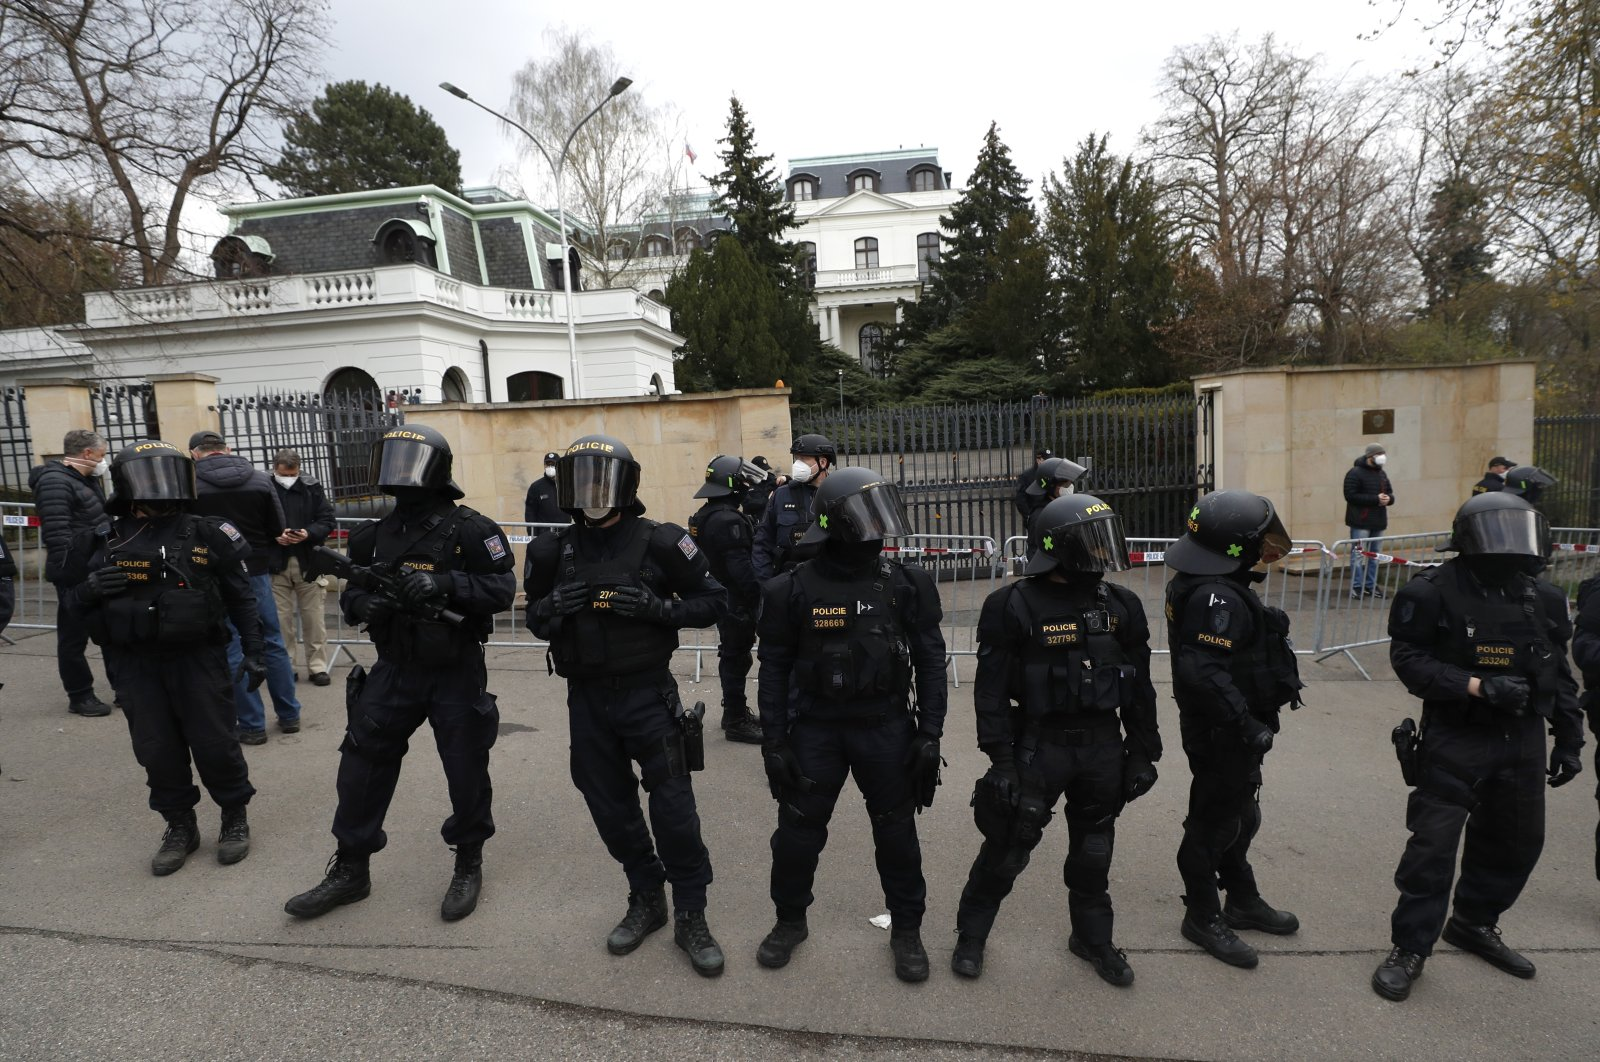 Riot police guard the area as protesters gather in front of the Russian Embassy in Prague, Czech Republic, April 18, 2021. (AP Photo)